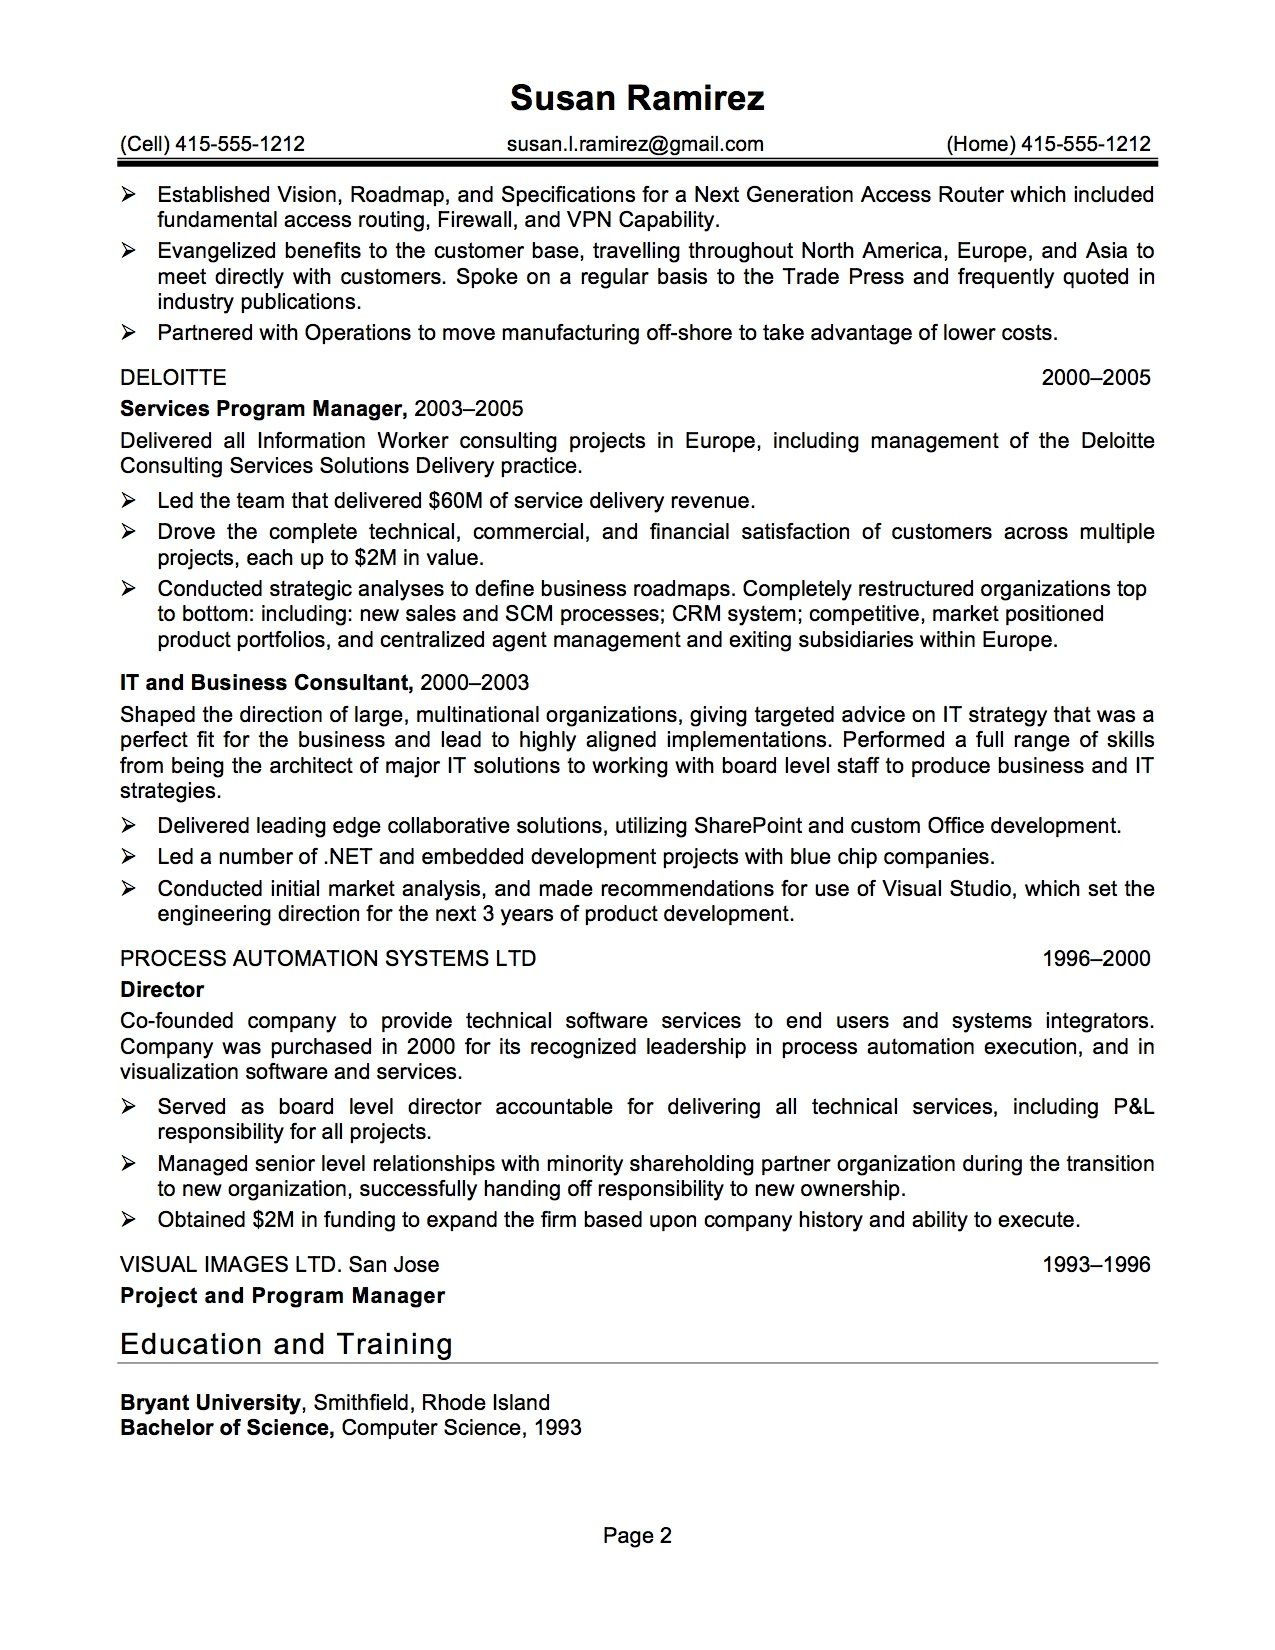 Clarkson University Senior Computer Science Resume Sample - http ...